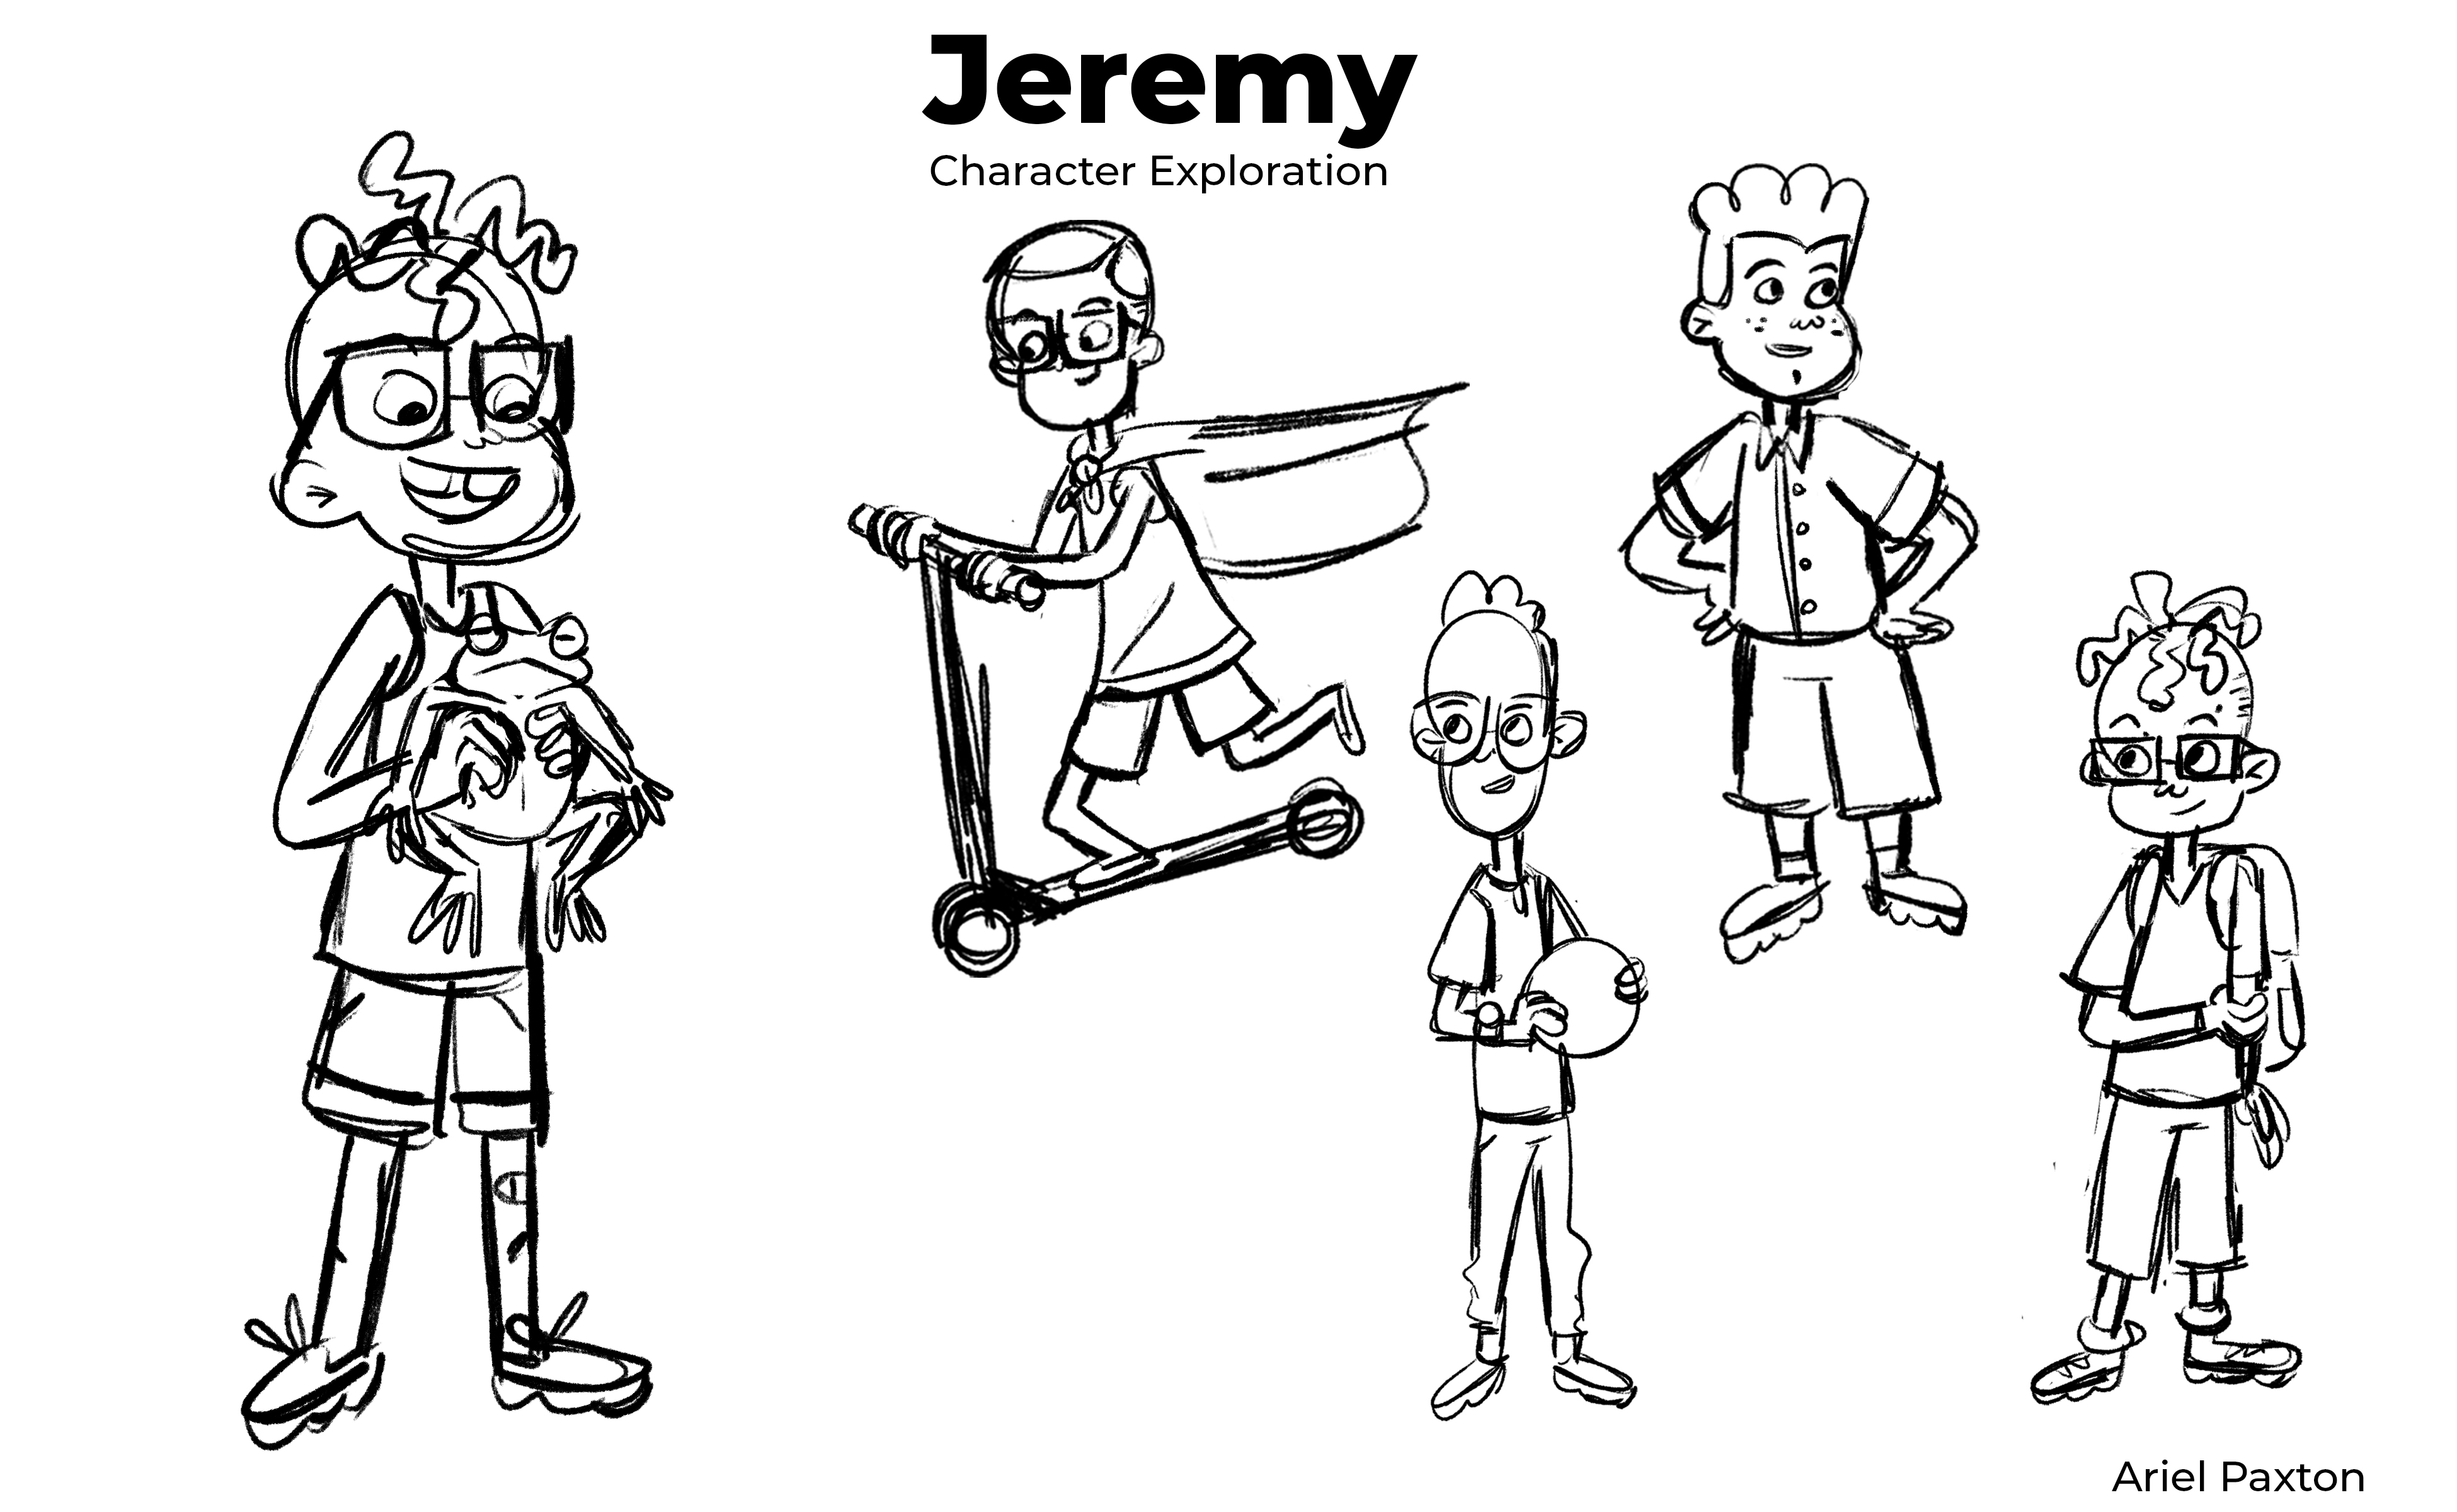 Jeremy Rough Character Design